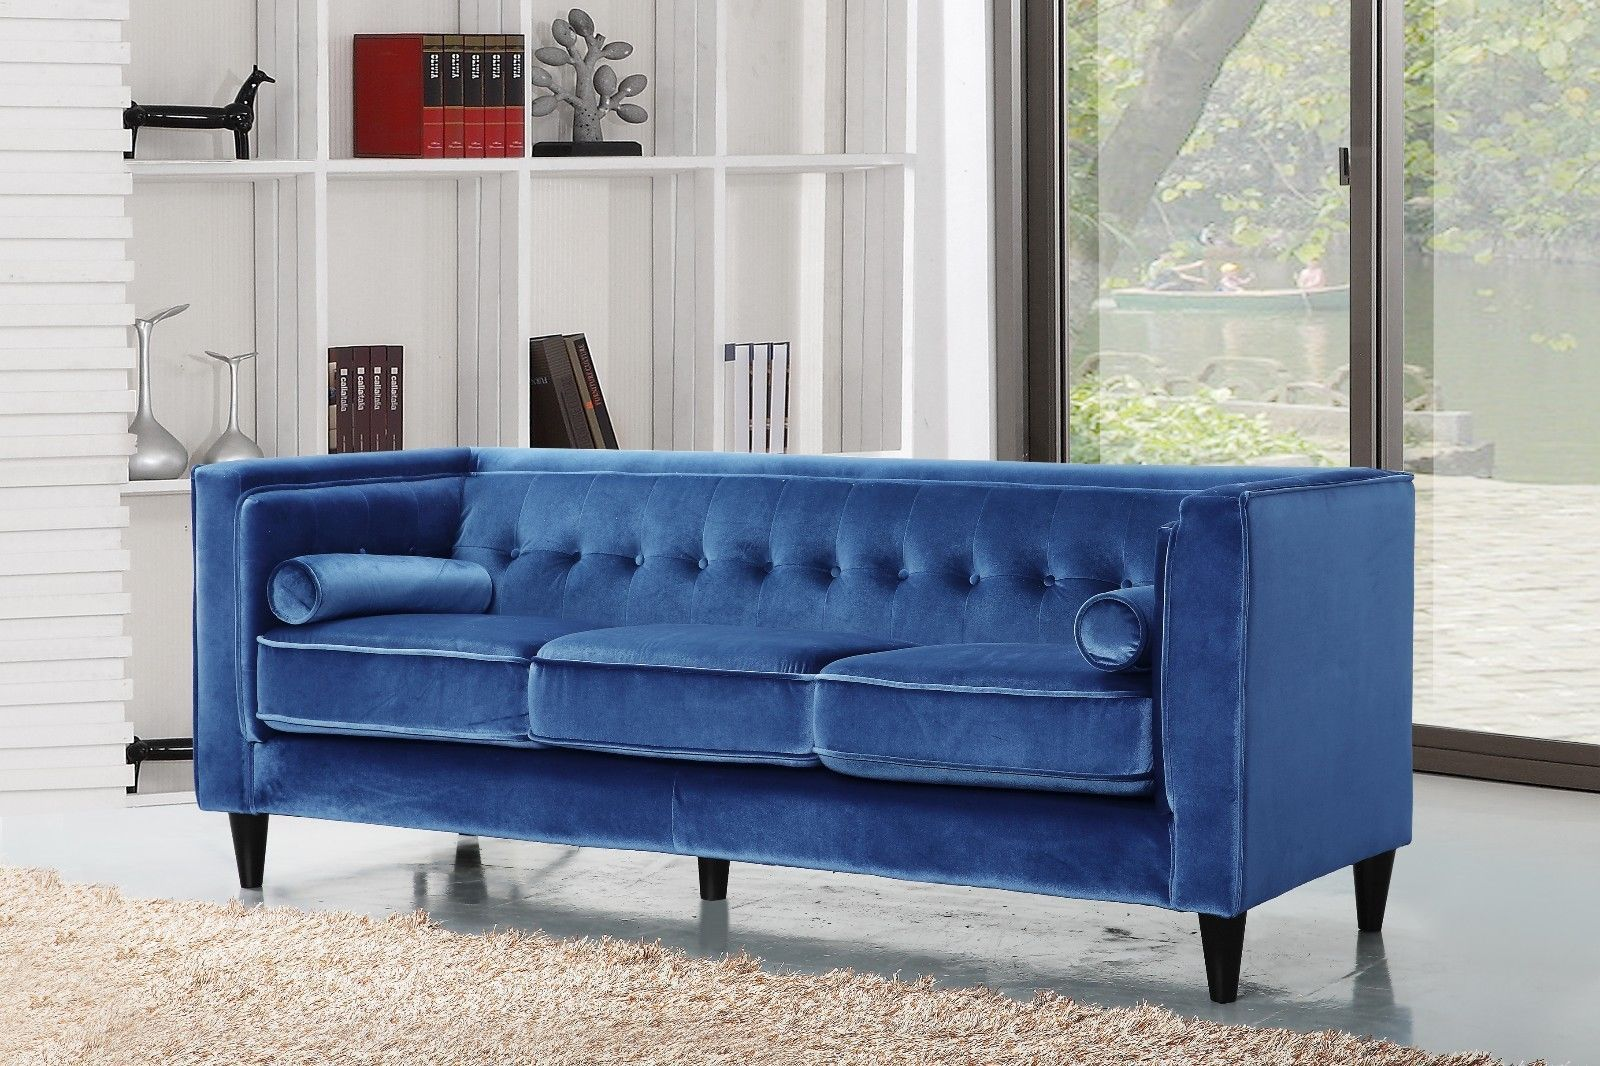 Meridian 642 Taylor Living Room Sofa in Light Blue Velvet Contemporary Style